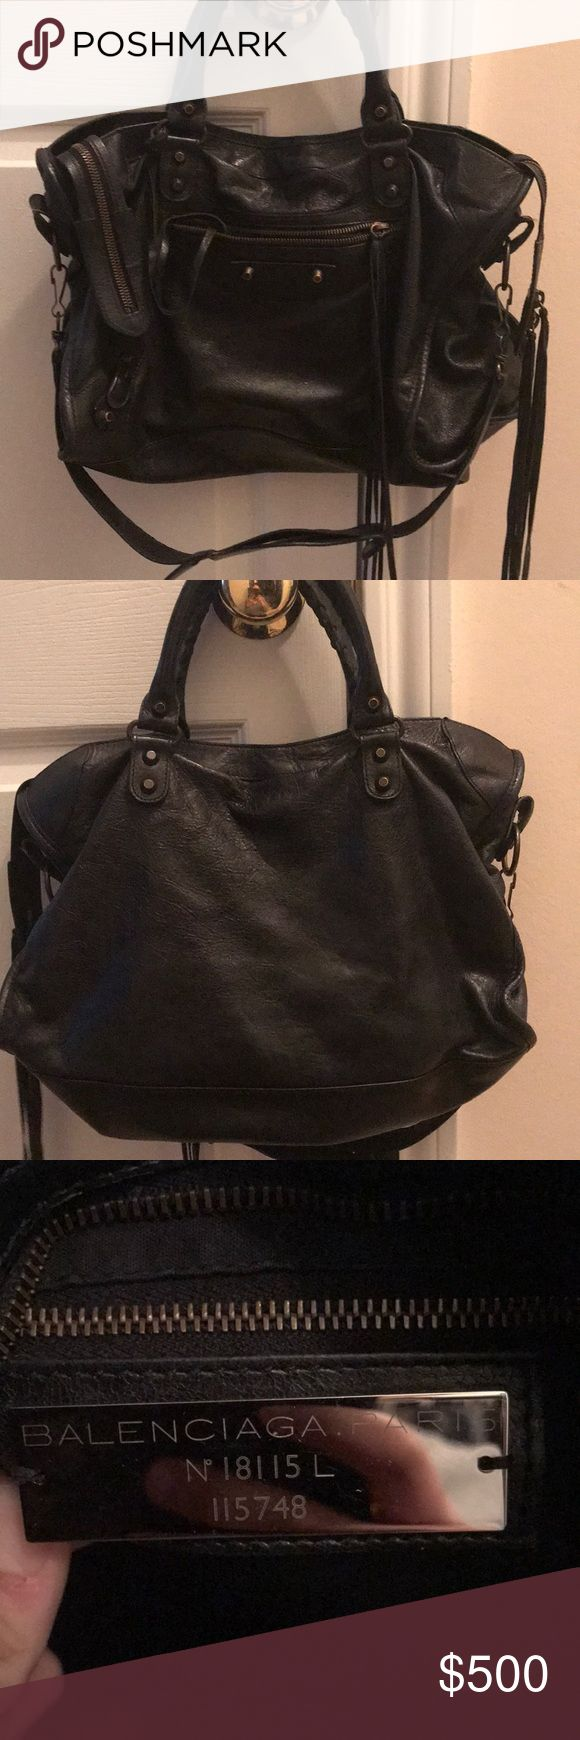 Authentic Balenciaga Moto City Bag 100% authentic and in good condition. Signs of wear include light leather scratches at the top and marks in the interior. Price reflects. Includes shoulder strap and mirror. No dust bag. Balenciaga Bags